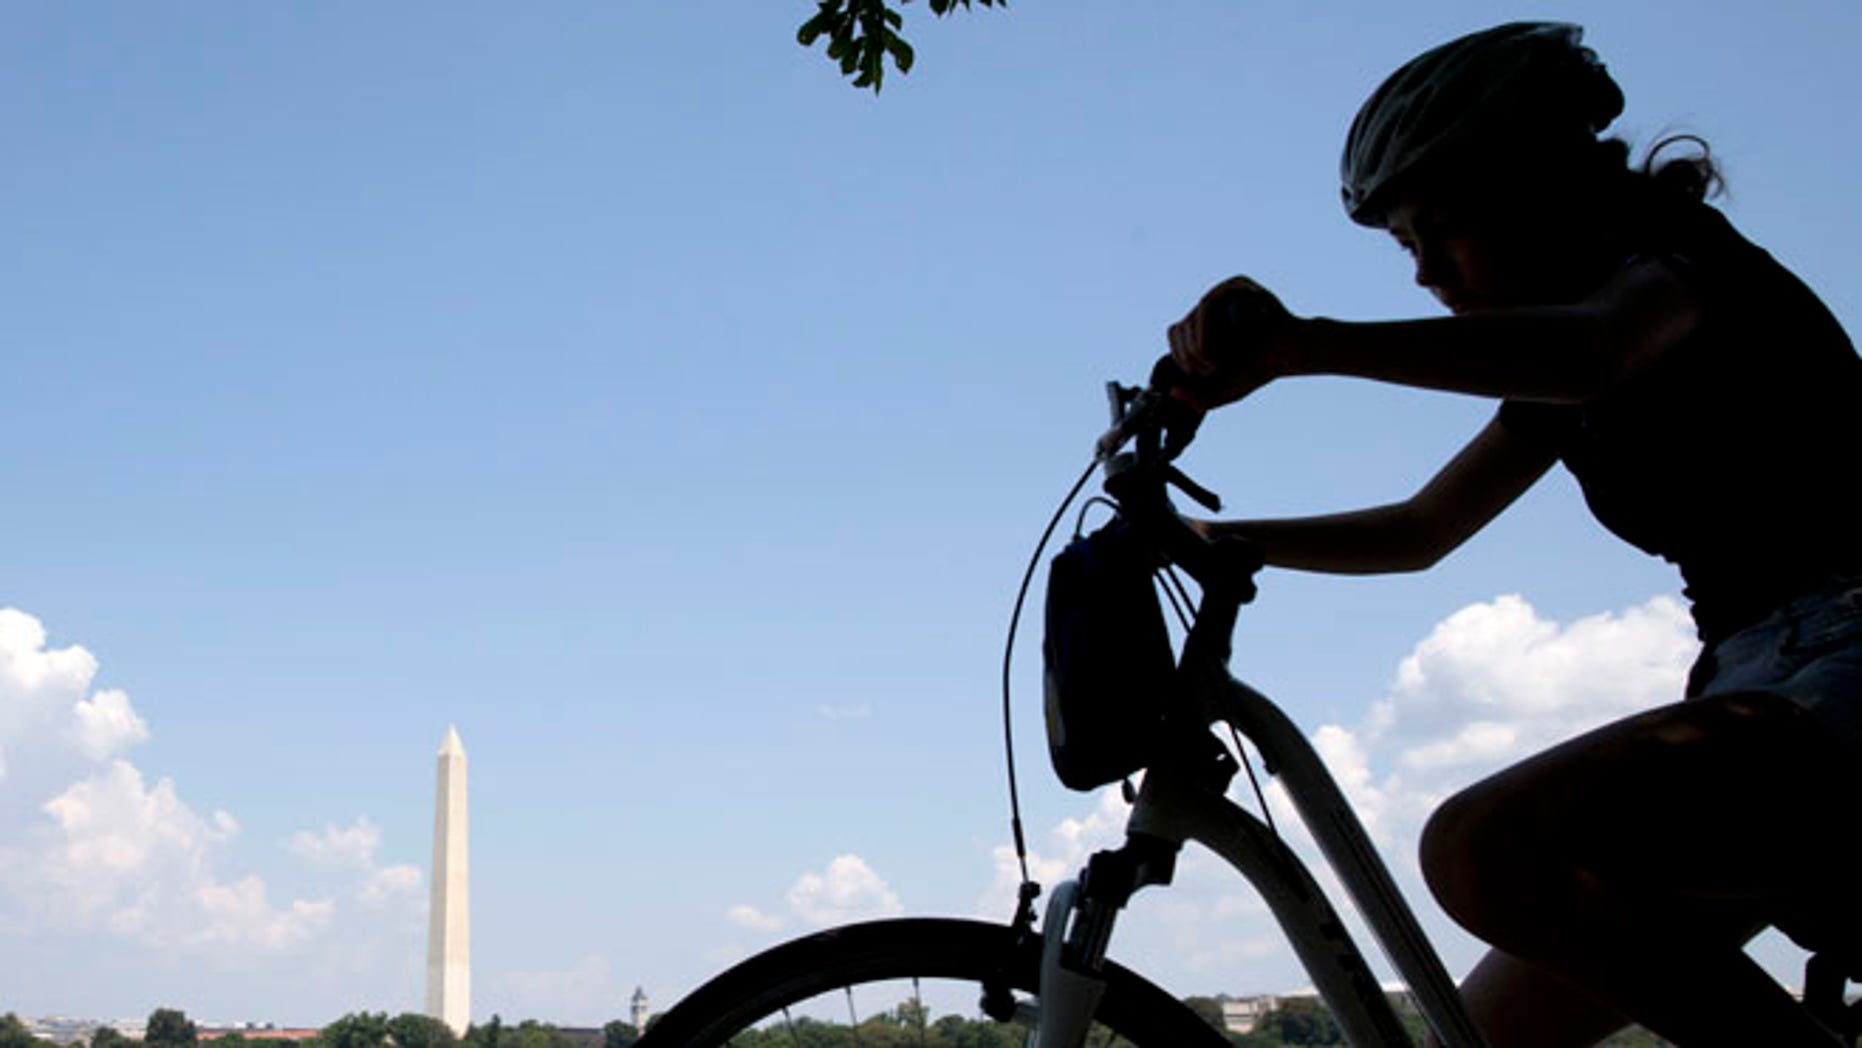 Aug. 17, 2015: A girl on a bicycle pedals around the Tidal Basin with the Washington Monument in the background.